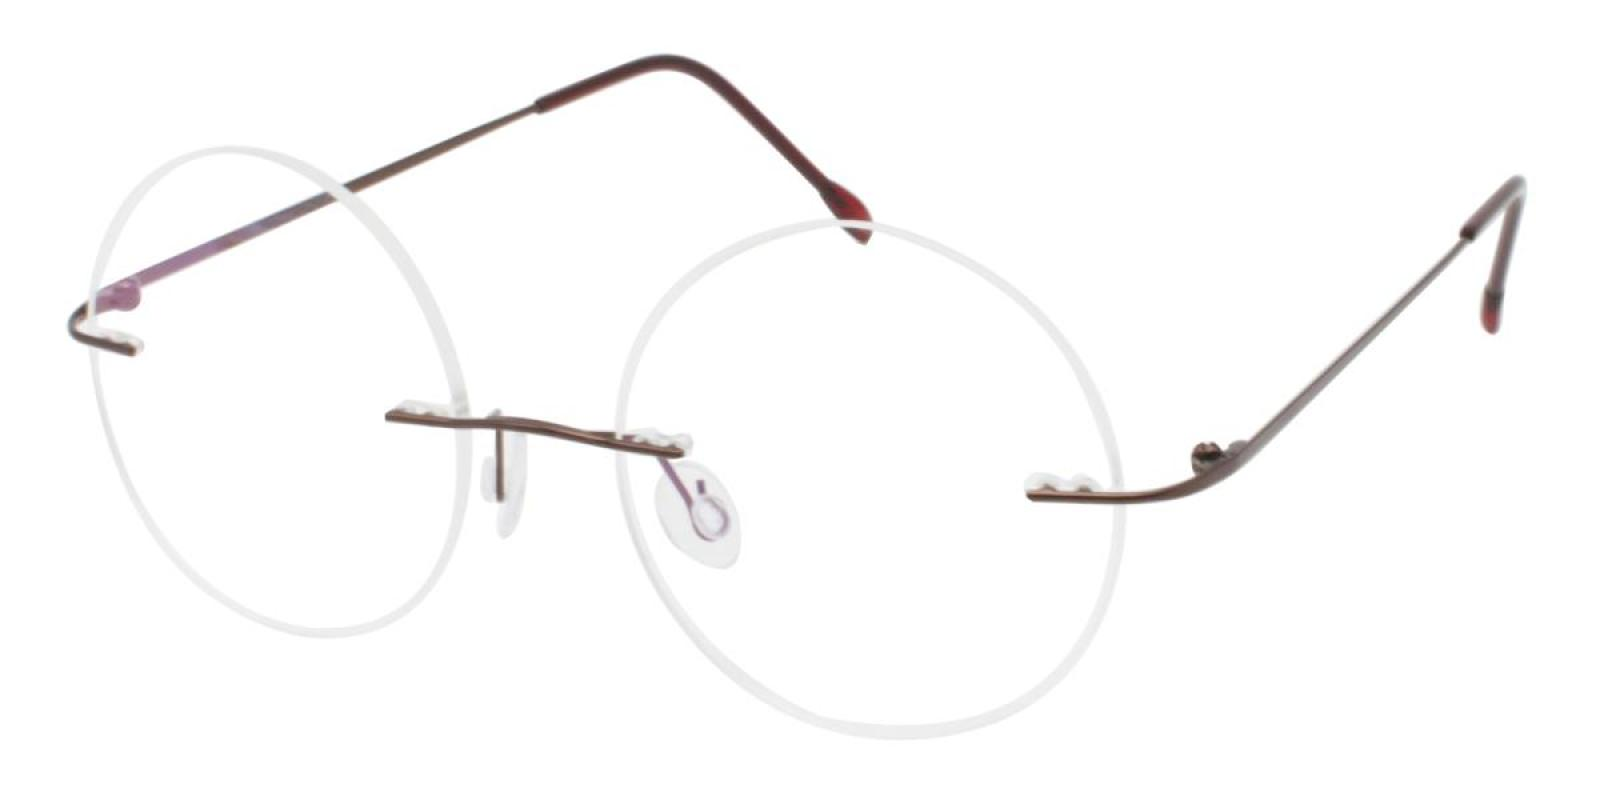 Knewphey-Brown-Varieties-Metal-Eyeglasses-additional1